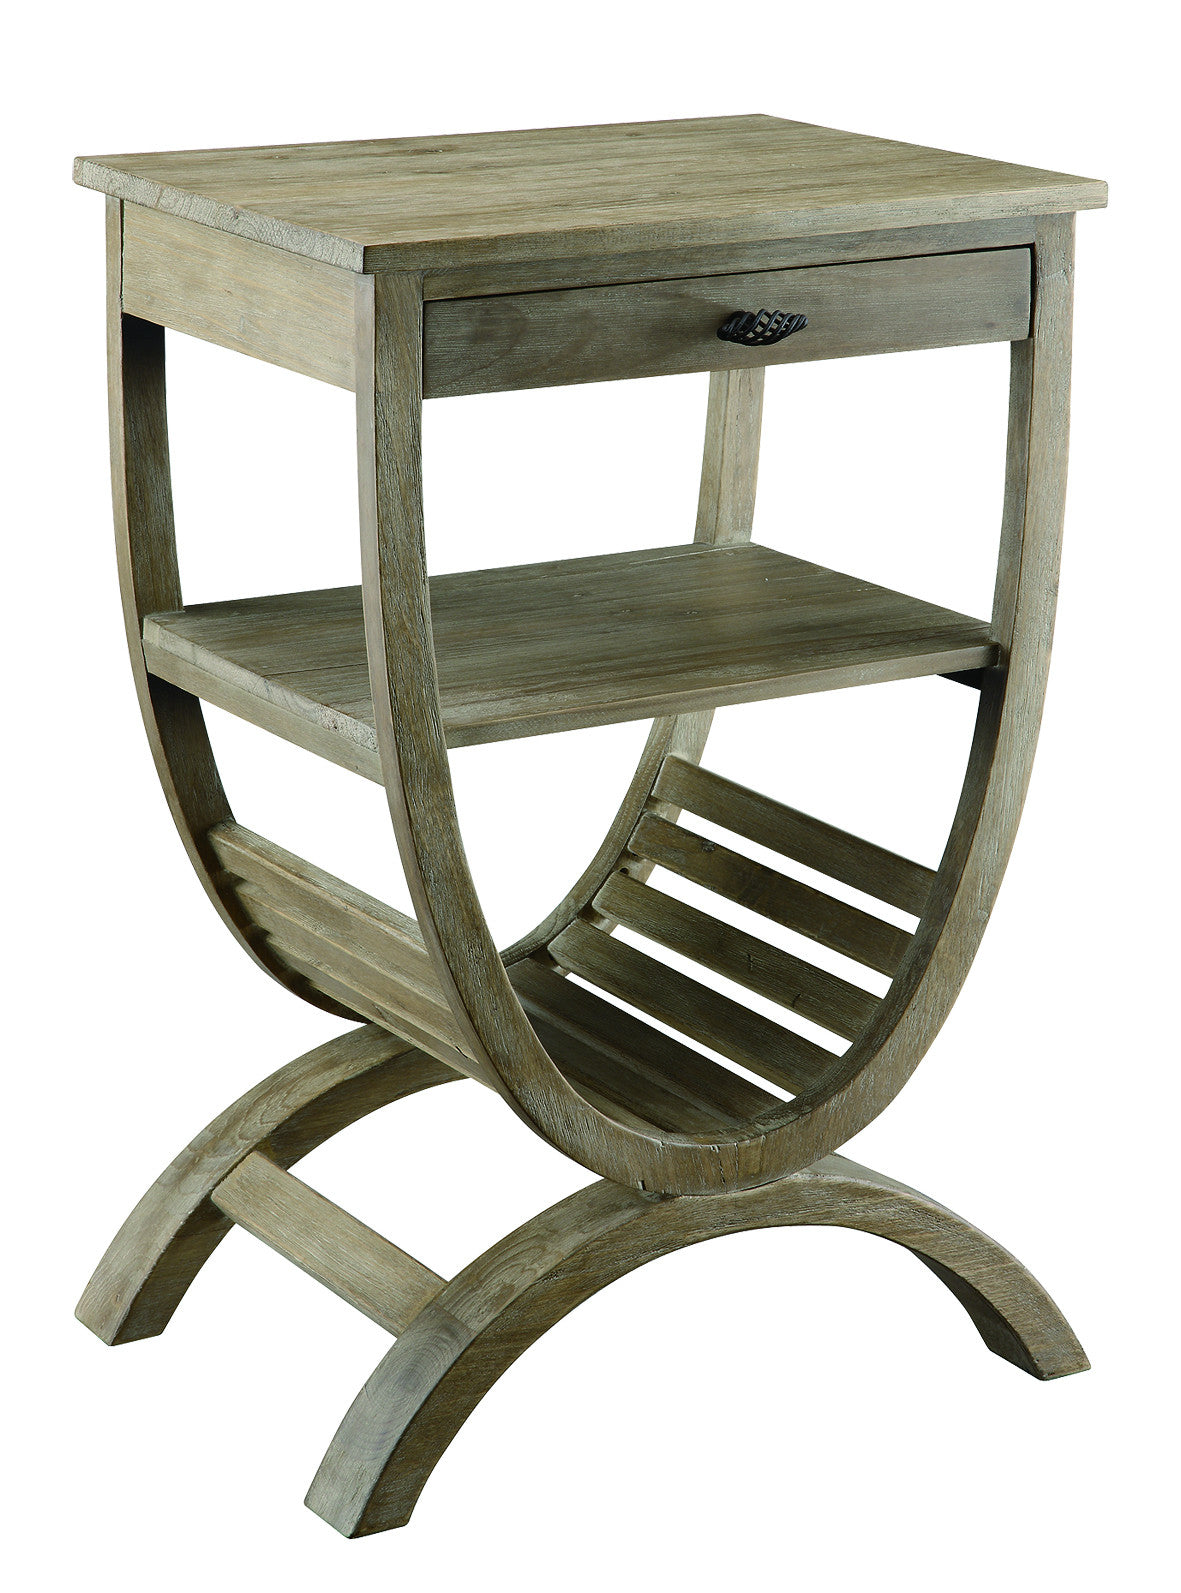 Blondelle Accent Table - The Rustic Furniture Store